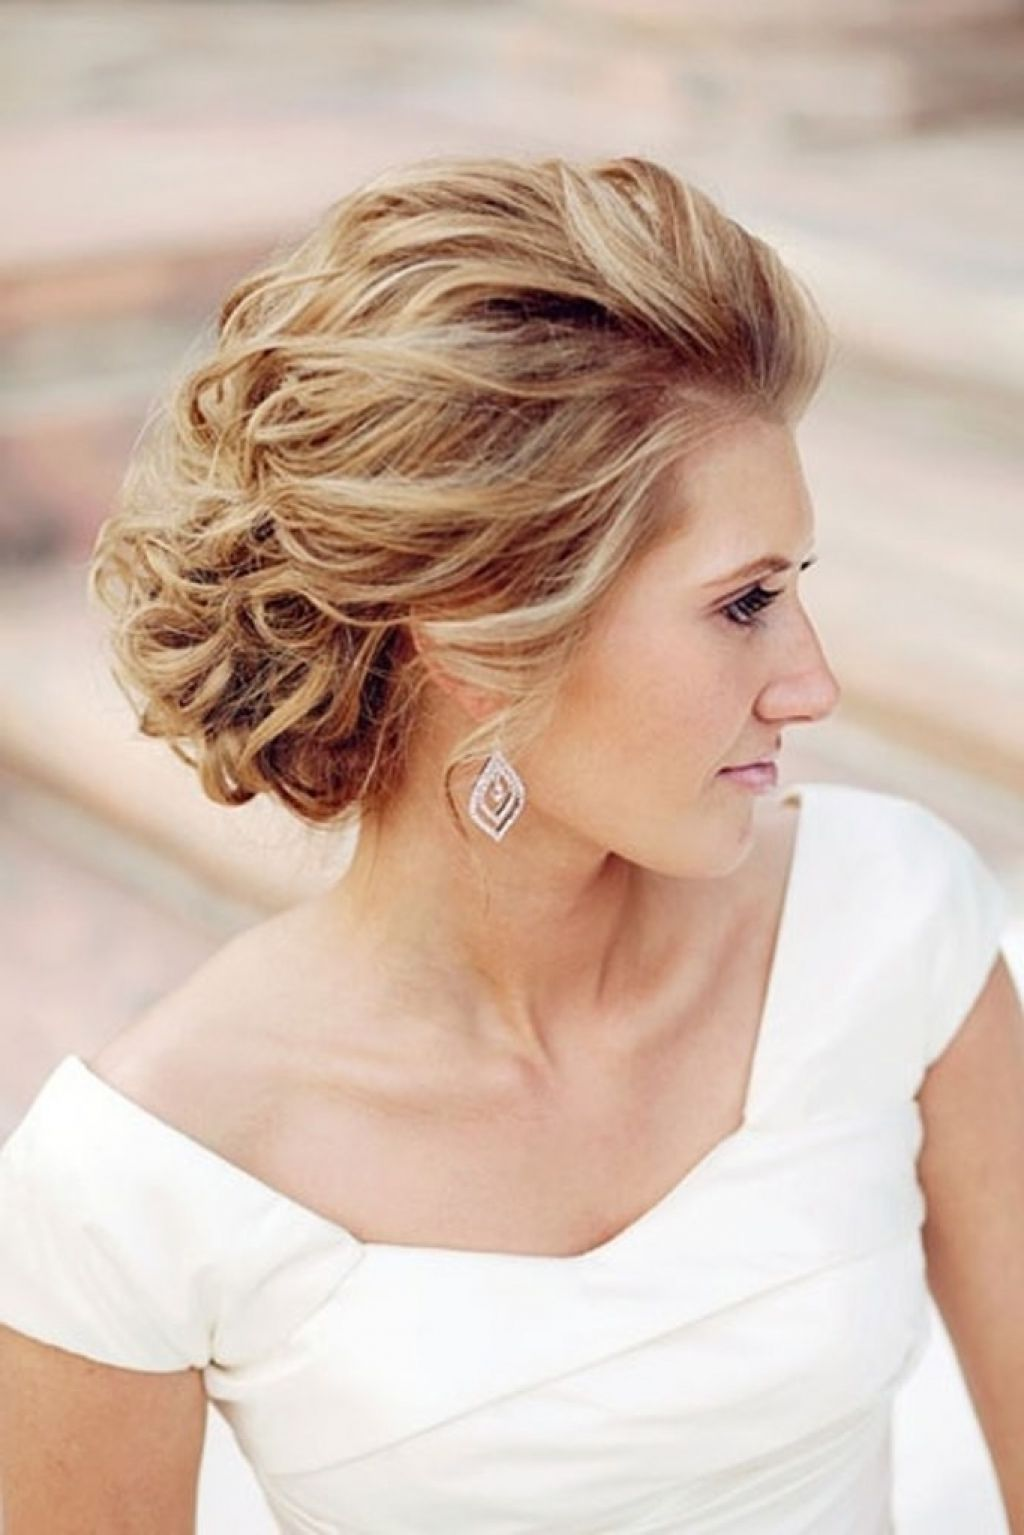 Bridesmaid Hairstyles For Medium Length Hair Wedding Design Ideas Wedding Hairstyles Mother Of The Bride Hair Mother Of The Groom Hairstyles Short Wedding Hair